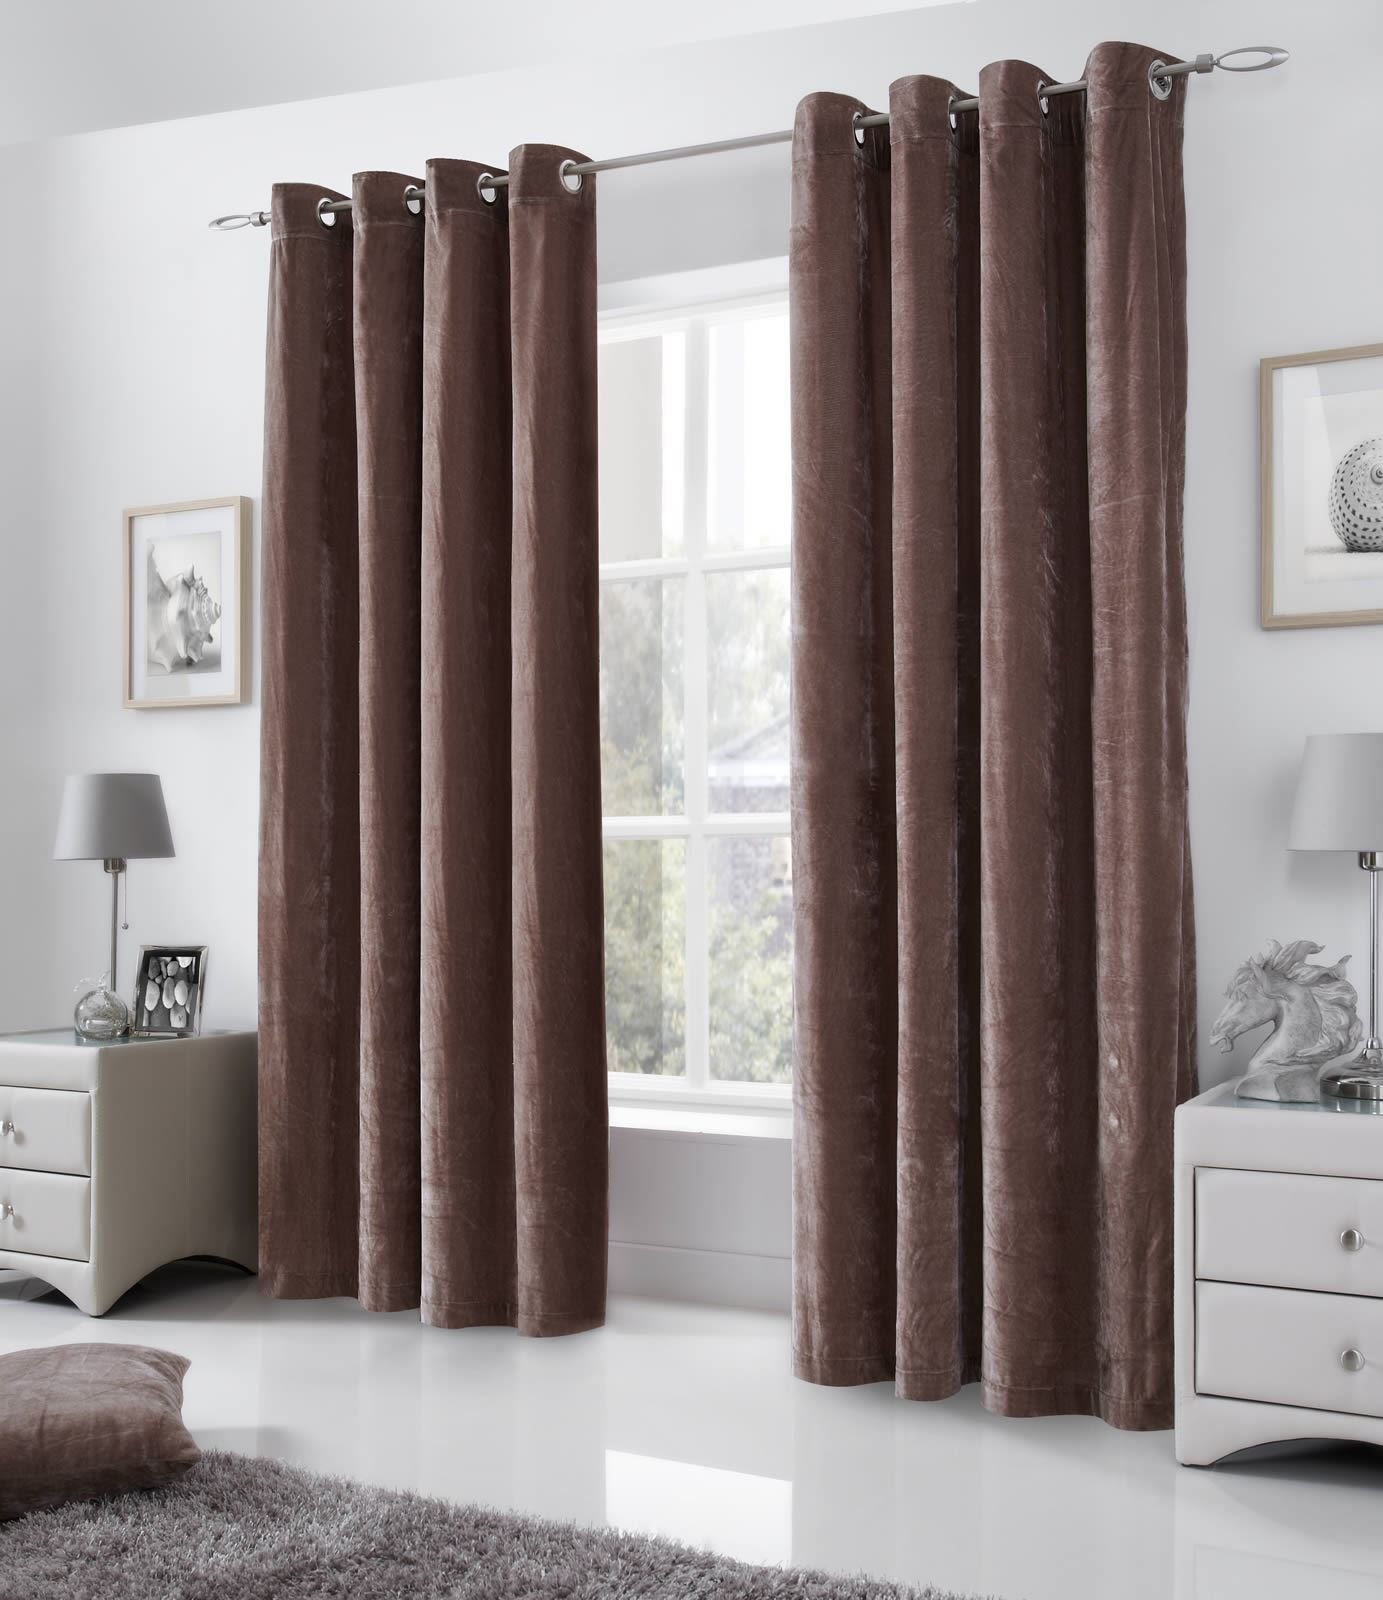 top group by readymade curtains ring darcy fully curtain products ready eyelet lined mcbride hamilton made bordered grey